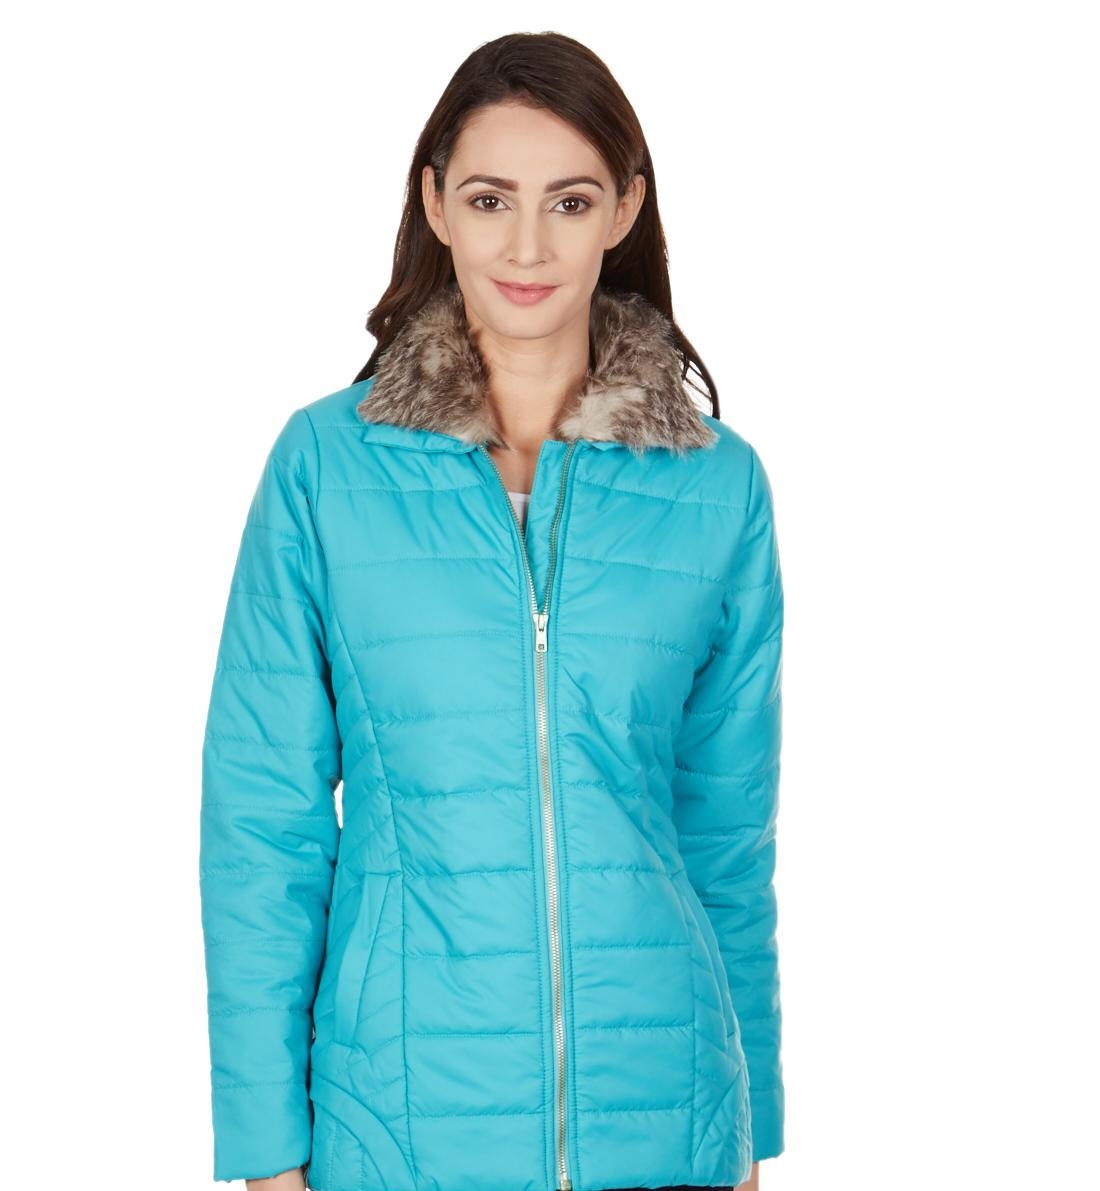 Monte Carlo ferozi parachute winter jacket for ladies